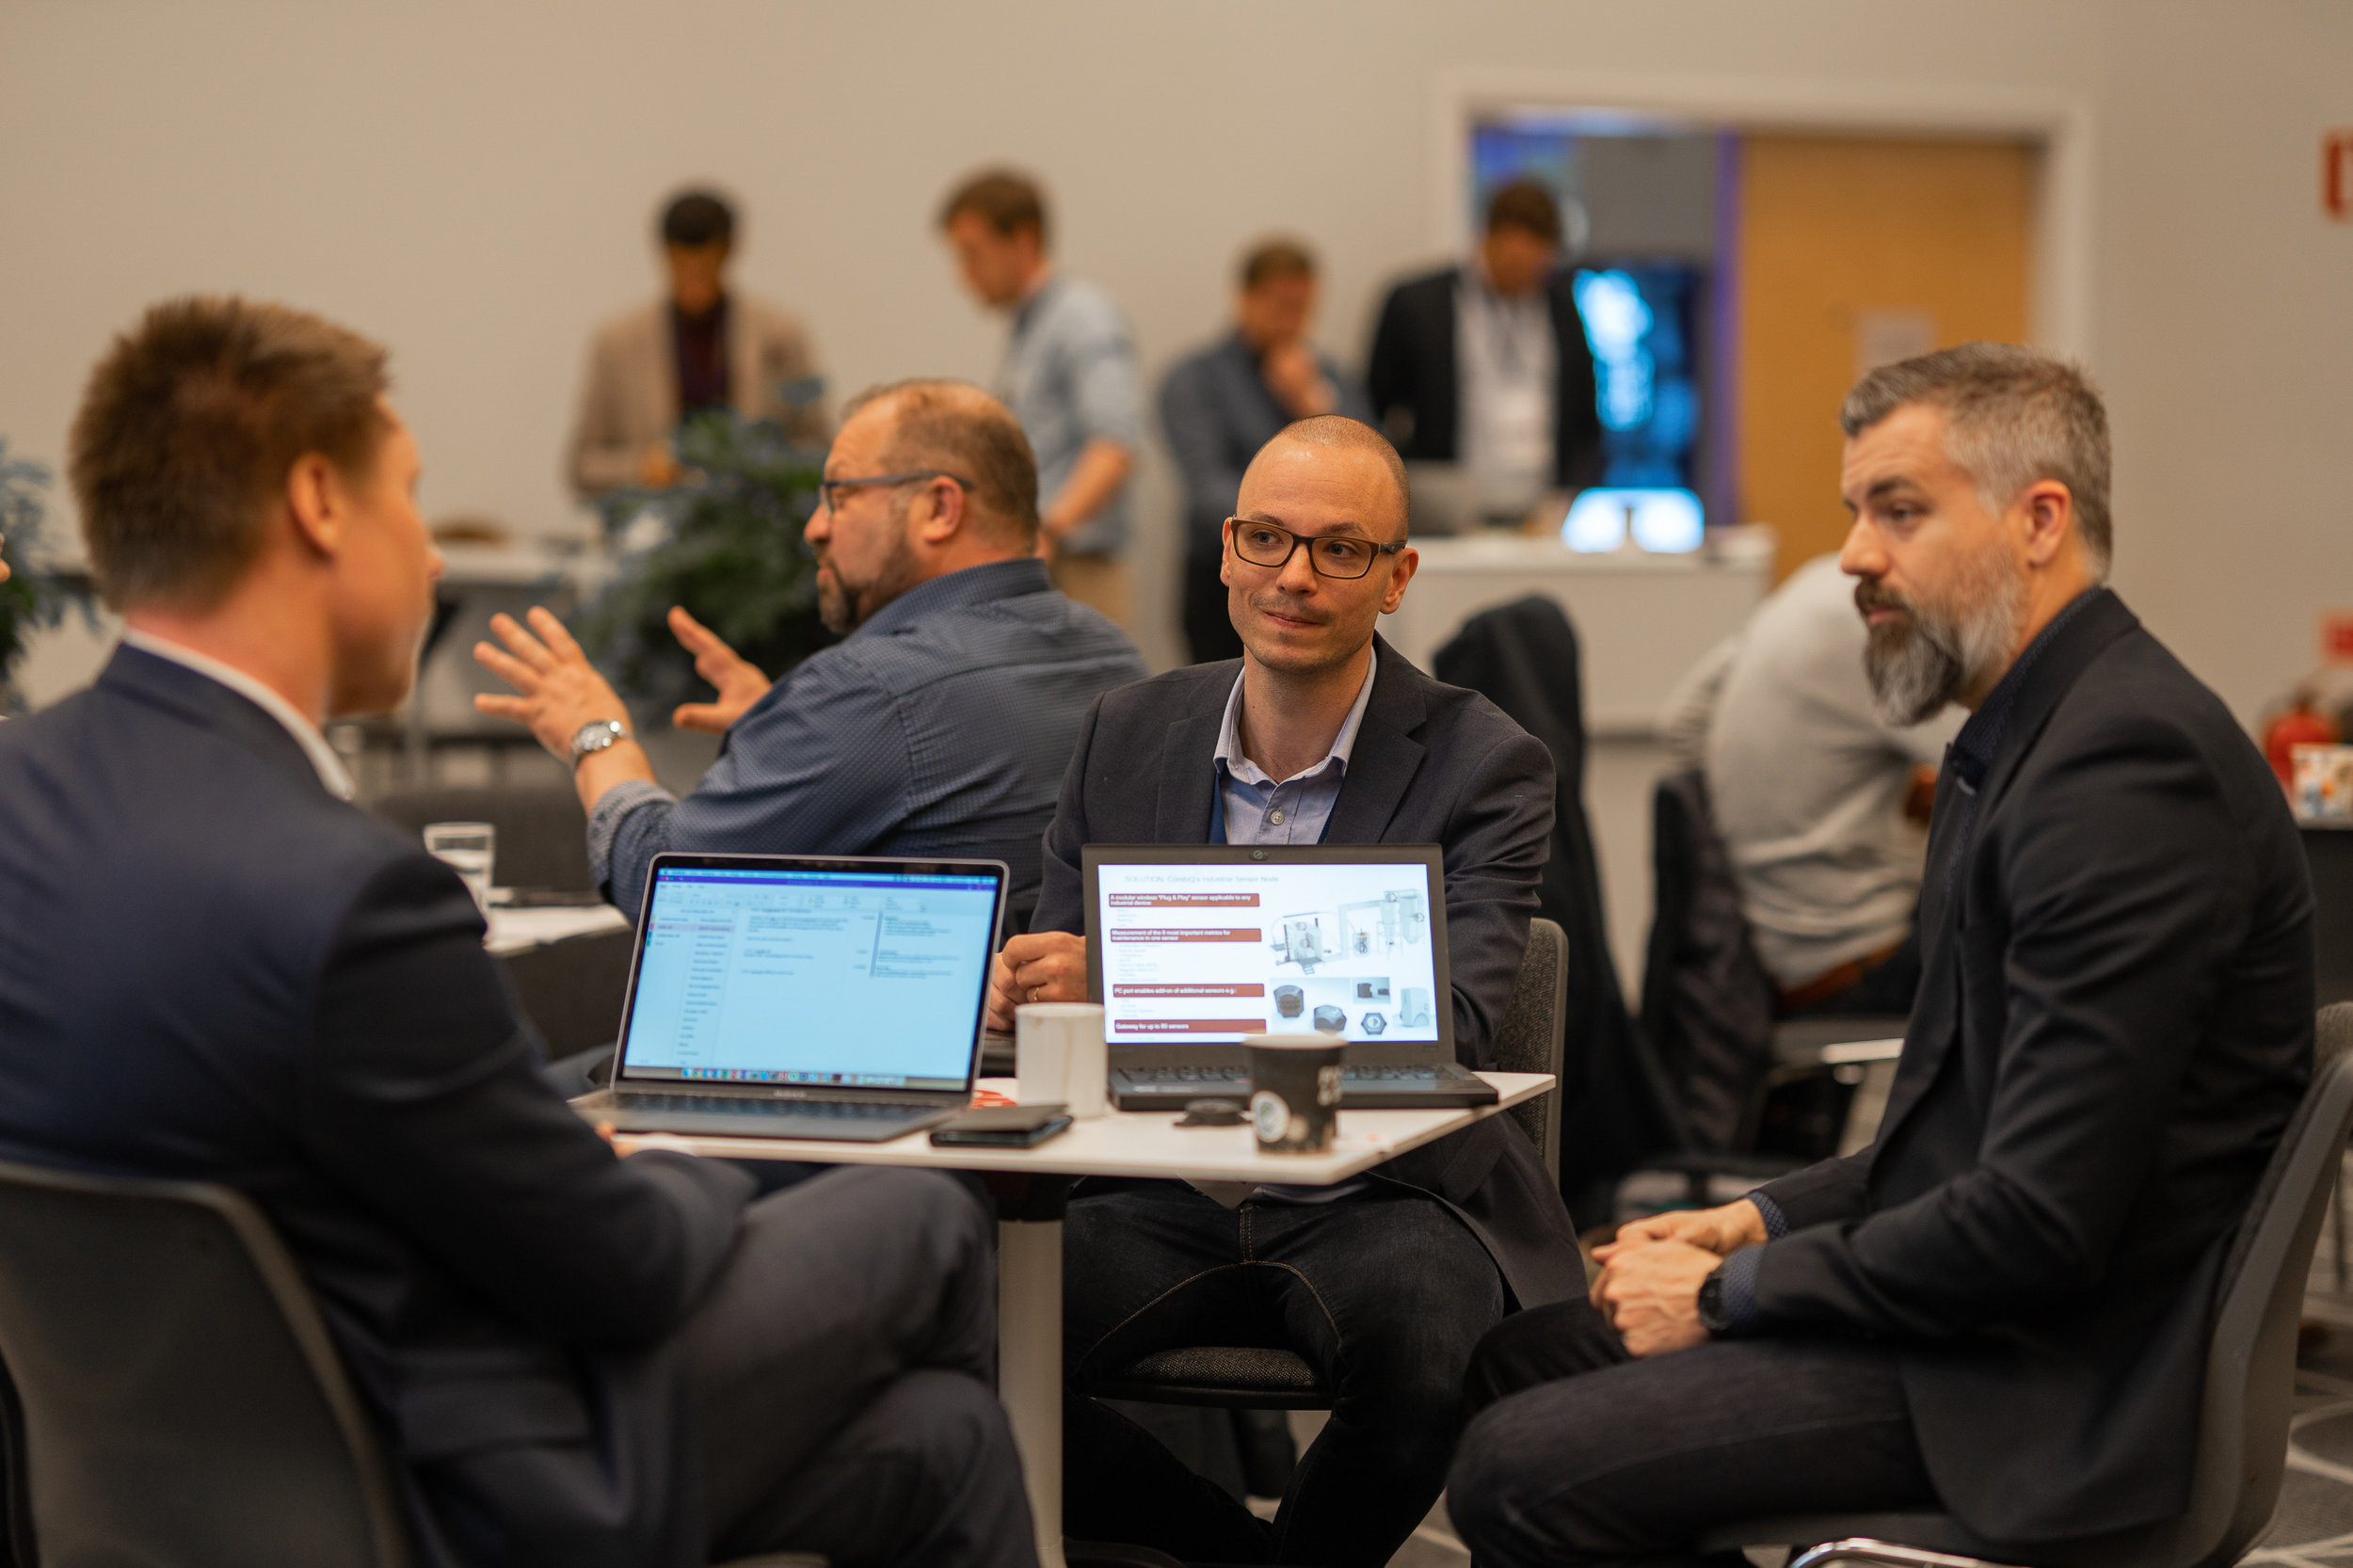 Over 110 meetings took place during the 3 days of matchmaking (Photo: Anders Nicander for Svenska Mässan)